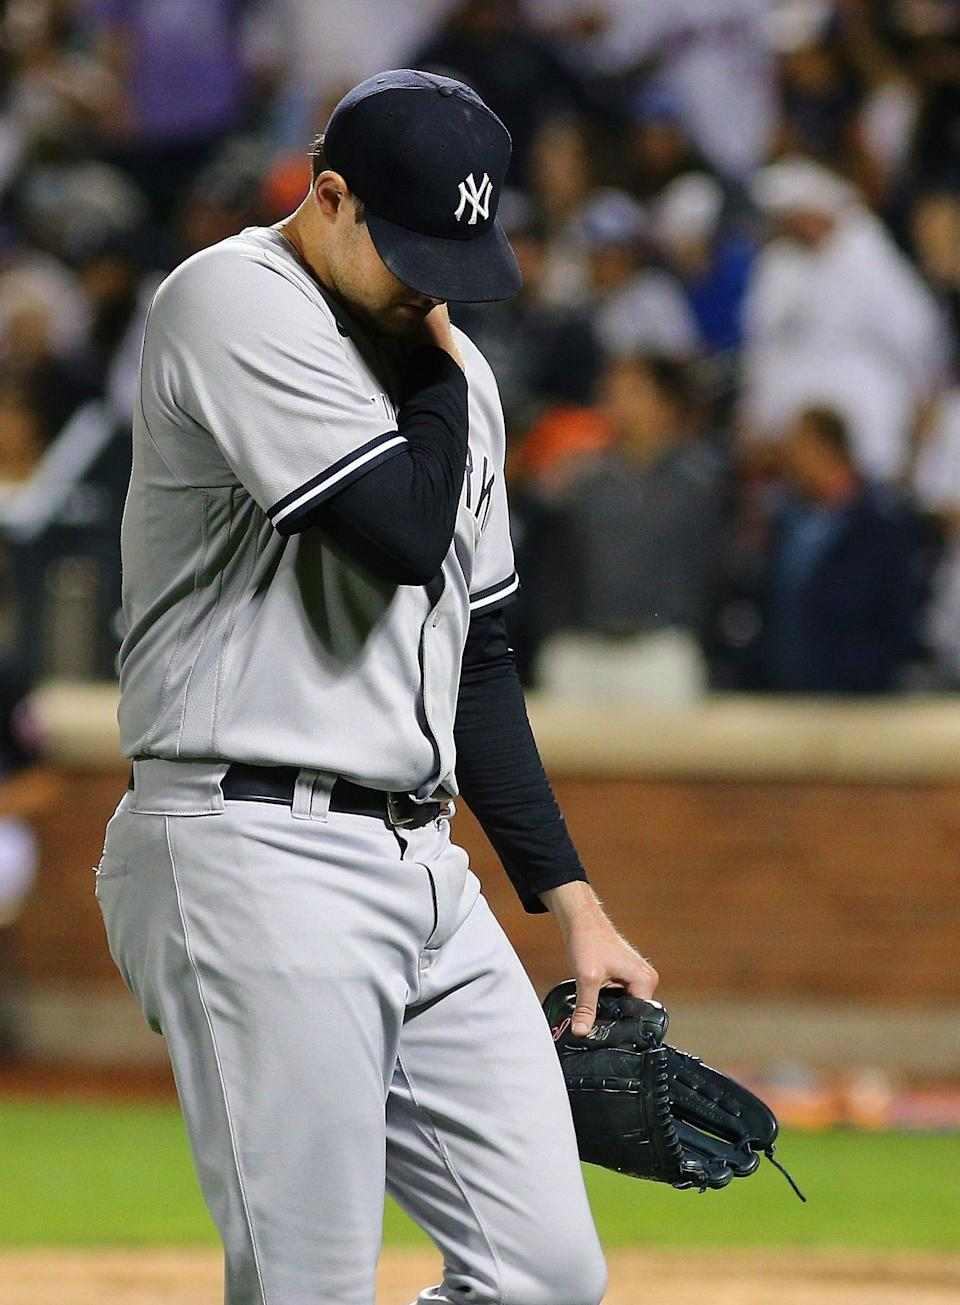 New York Yankees starting pitcher Jordan Montgomery leaves the mound after being taken out of the game in the fourth inning after giving up seven runs against the Mets.